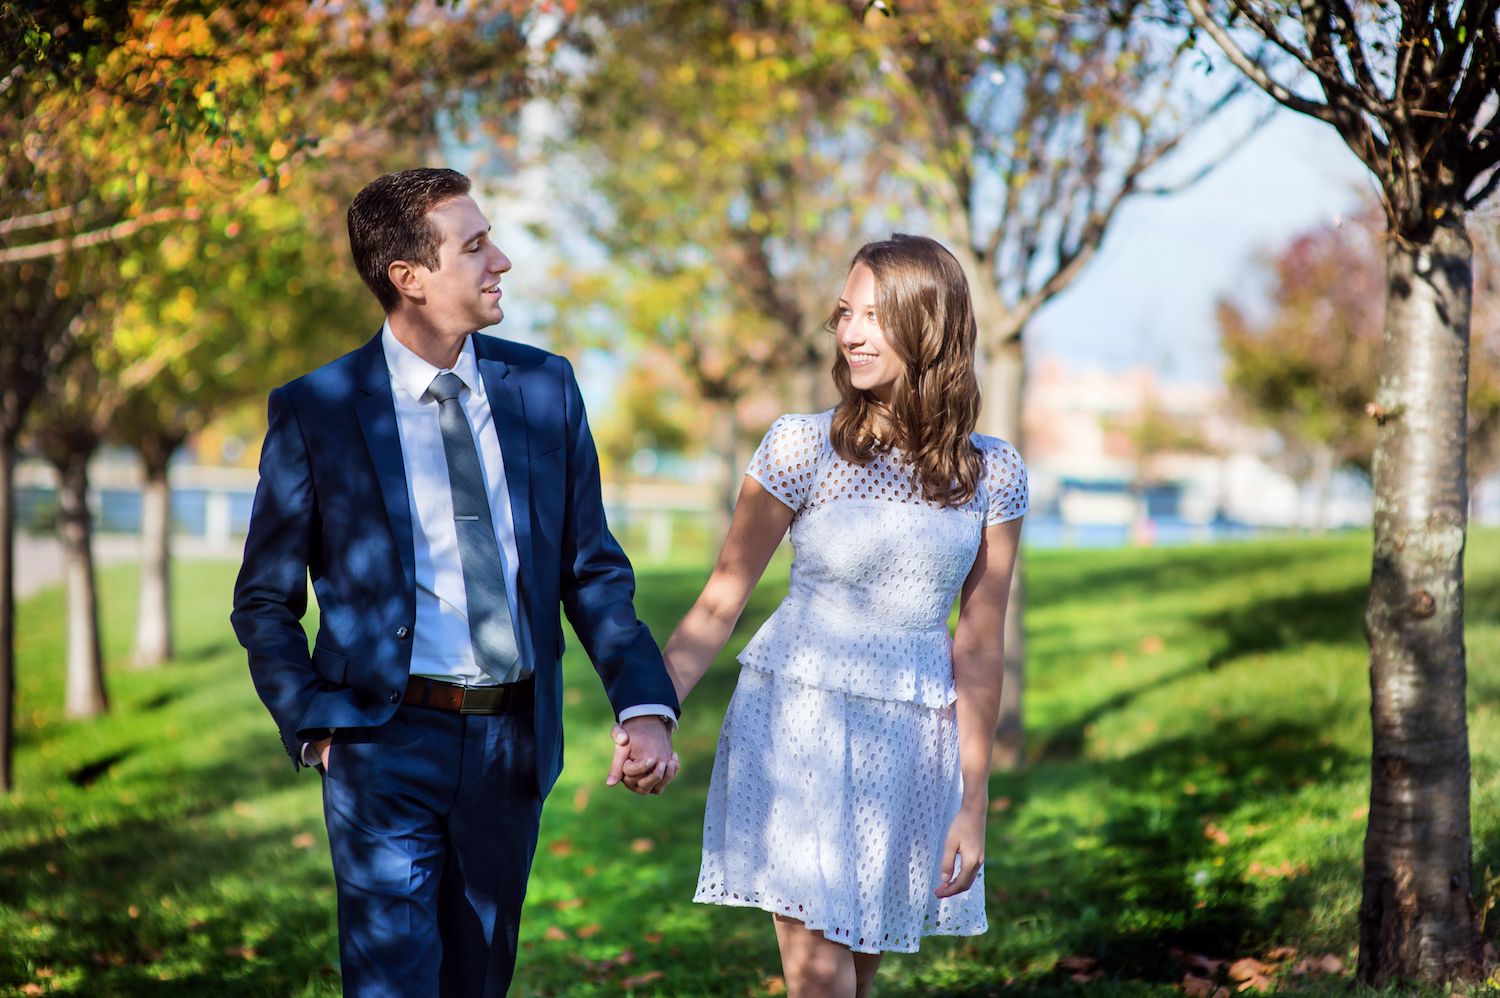 diana&dave-walking-hand-in-hand-park-engagement-photography-nj